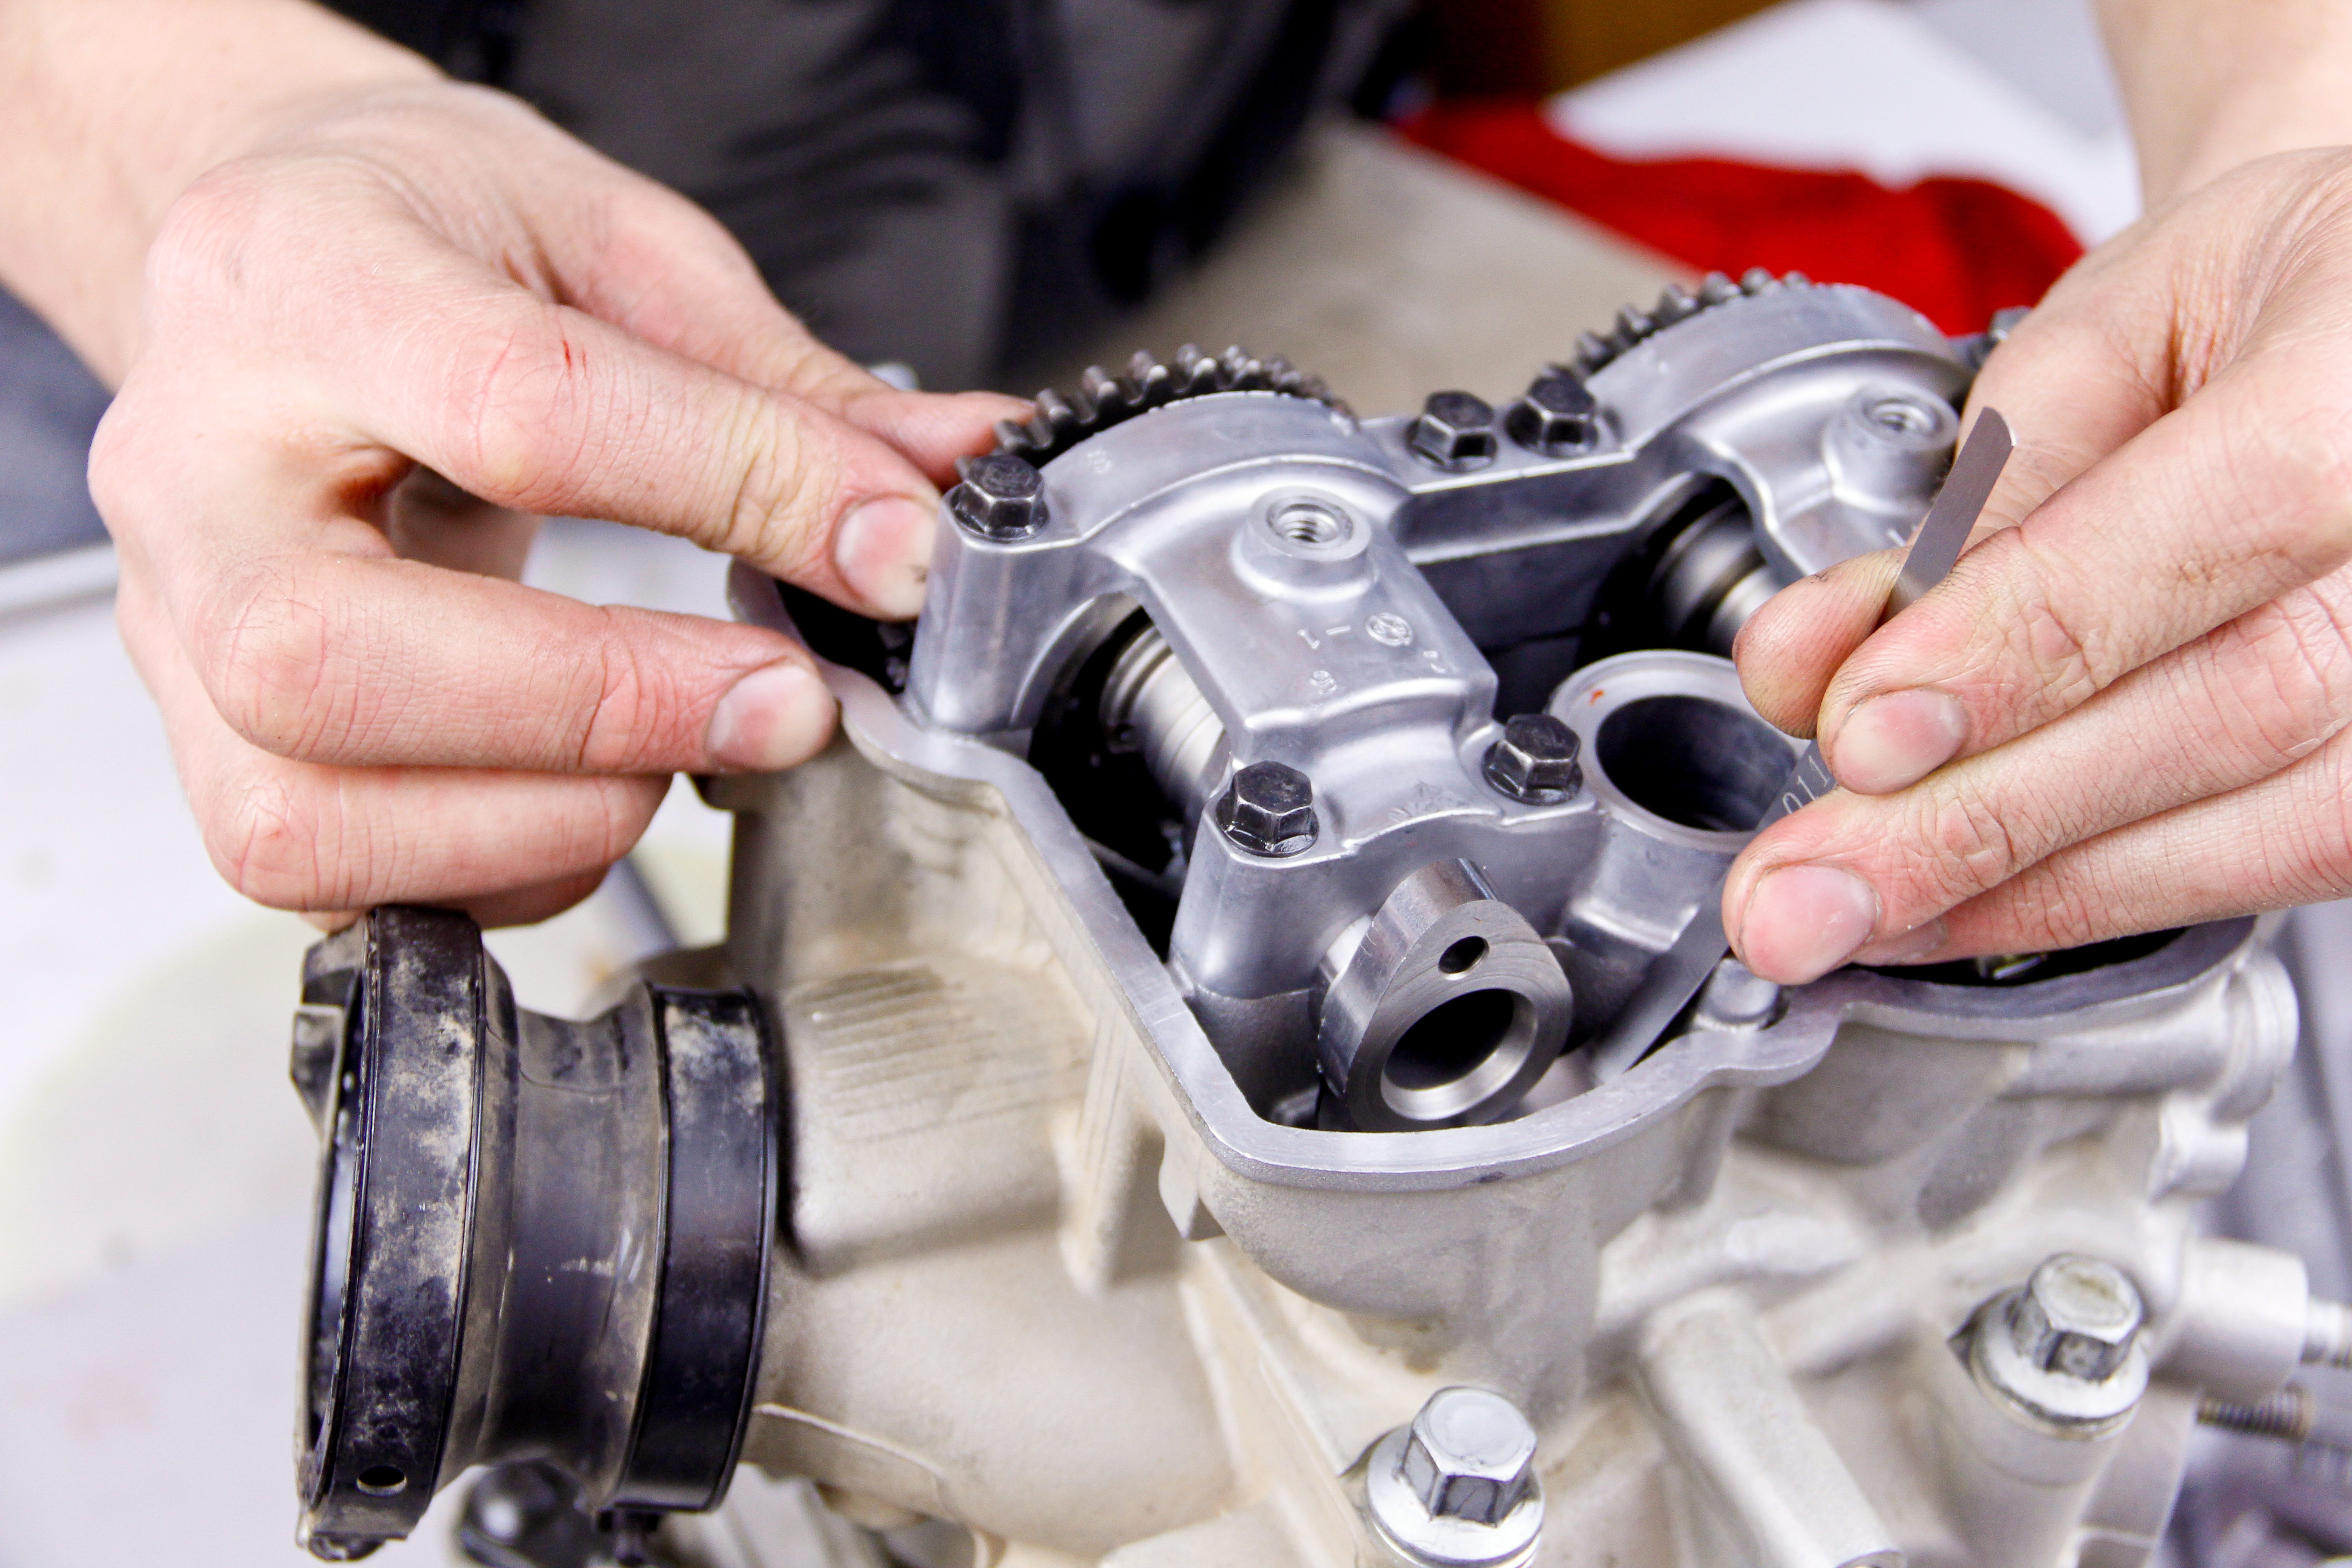 Checking and Adjusting Valve Clearance on Your Motorcycle